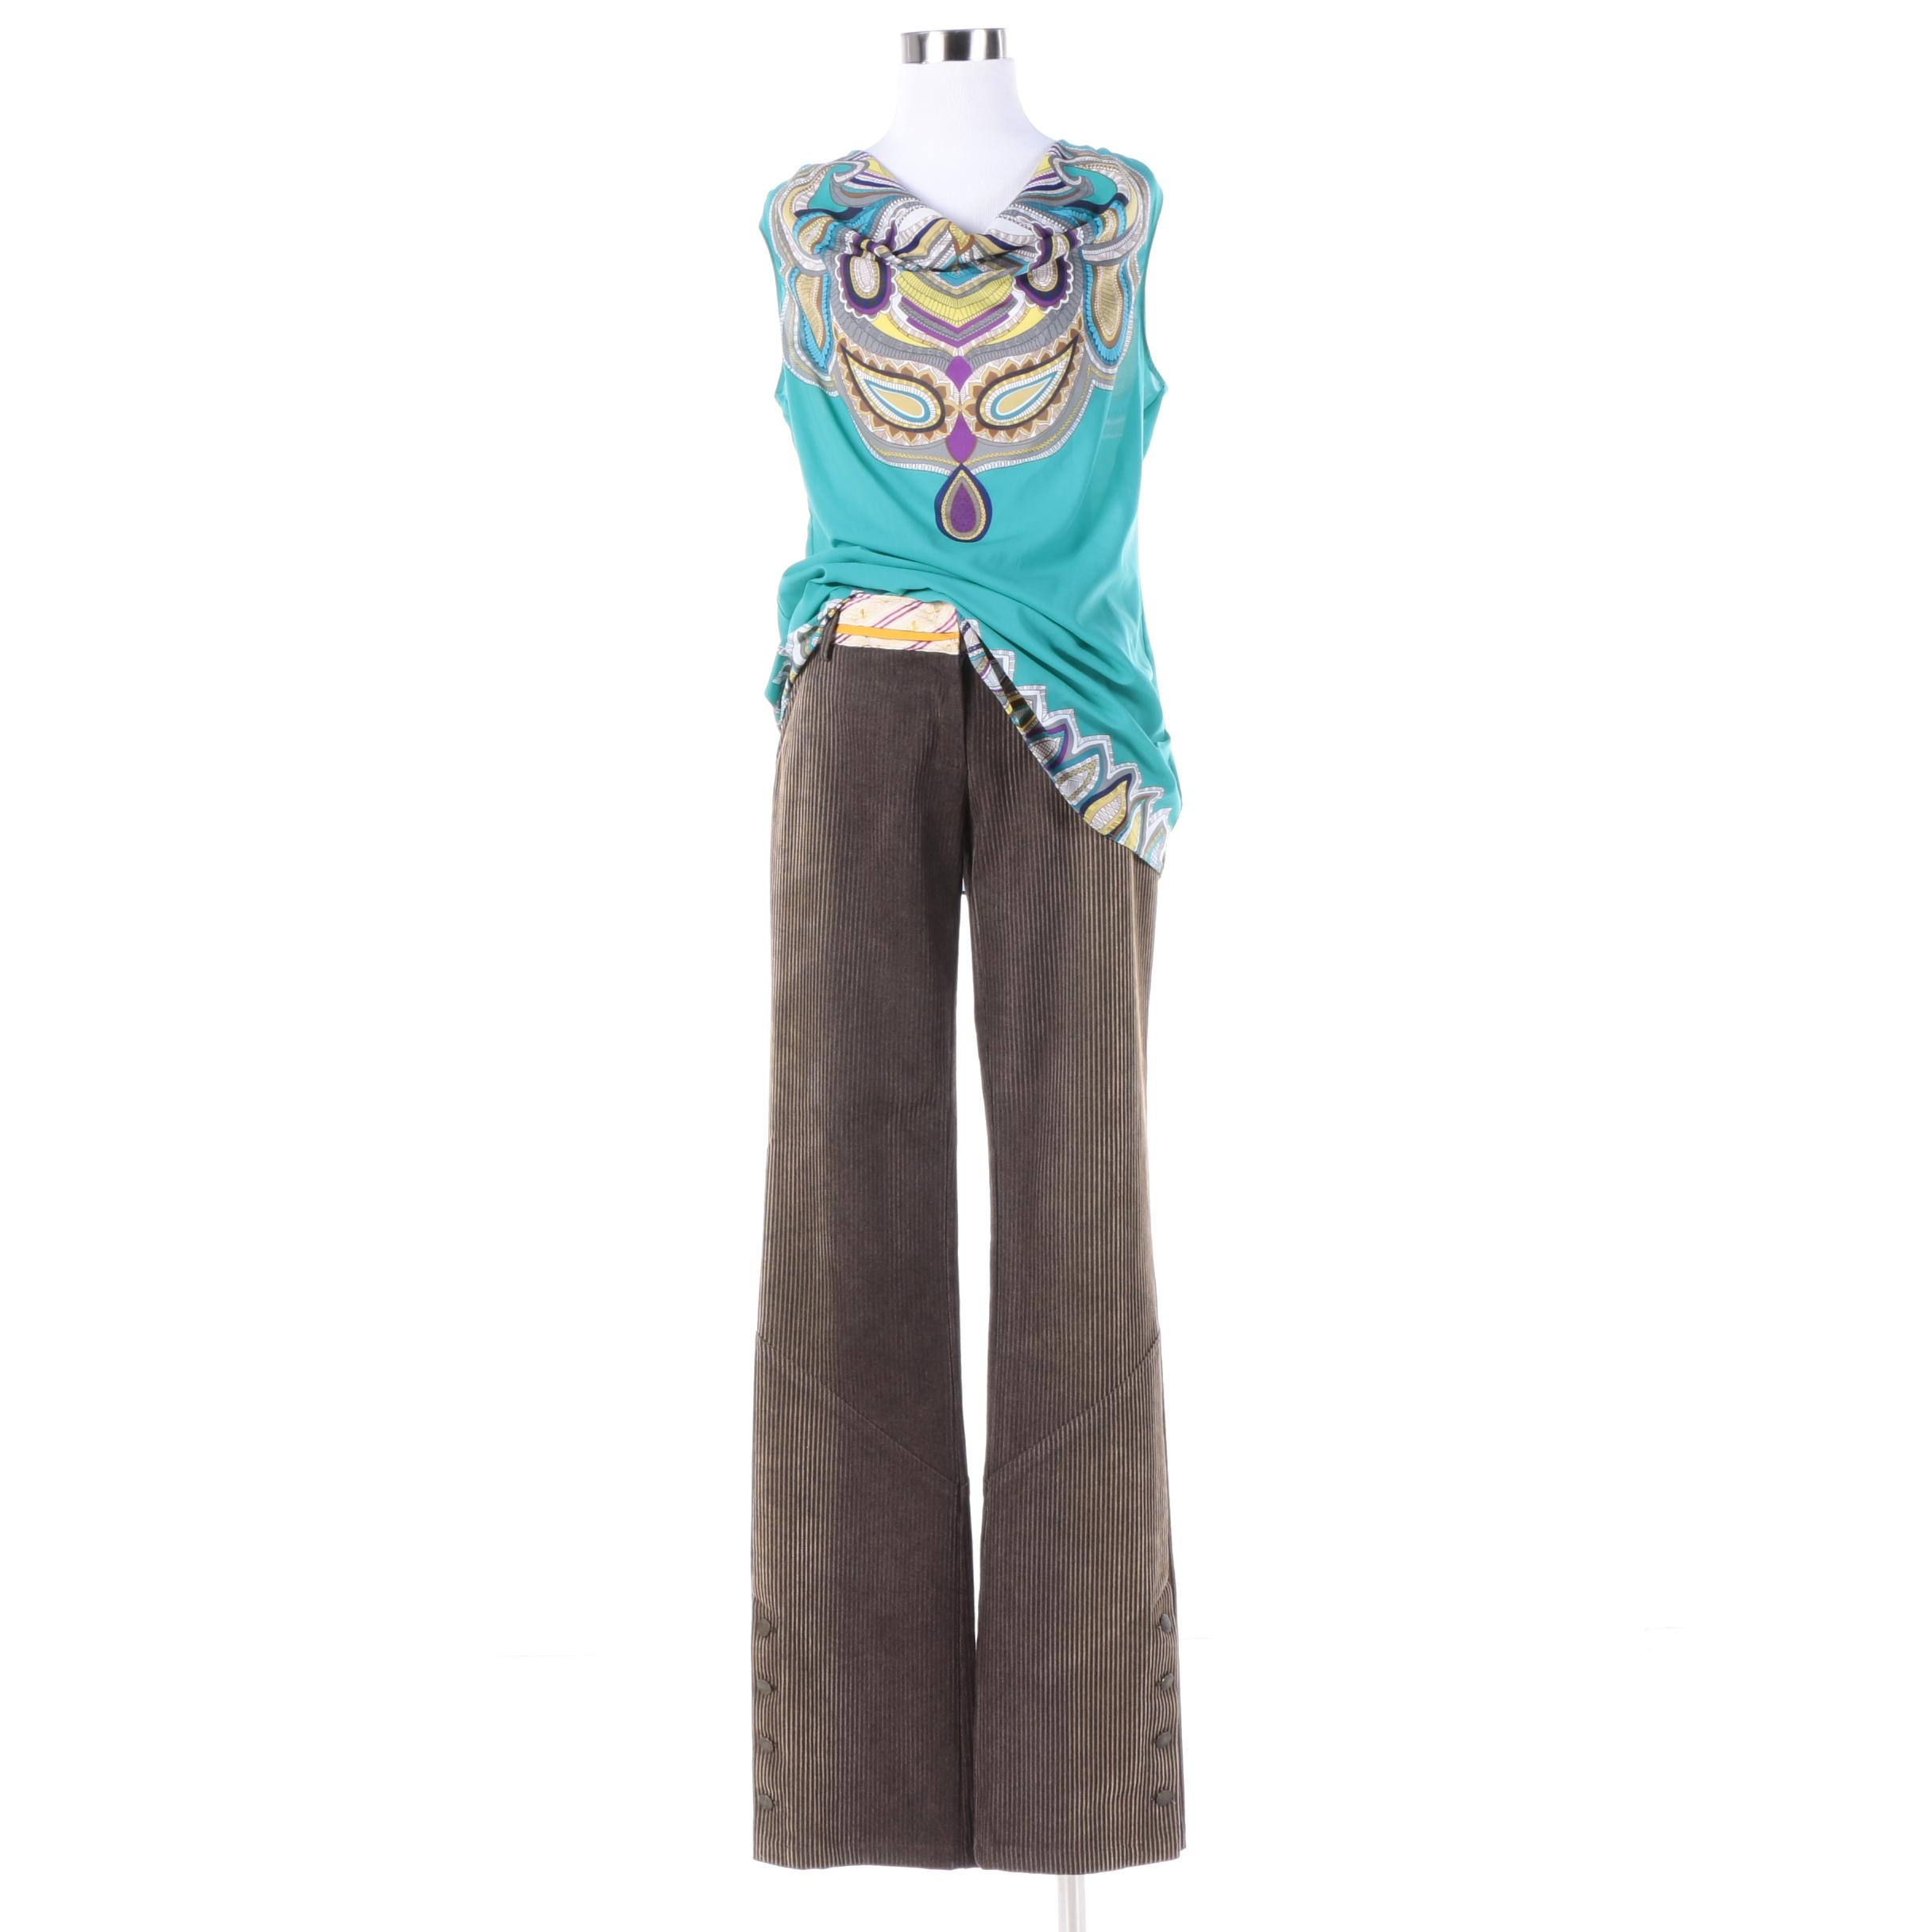 Women's Nicole Miller Collection Pants and Nicole by Nicole Miller Top